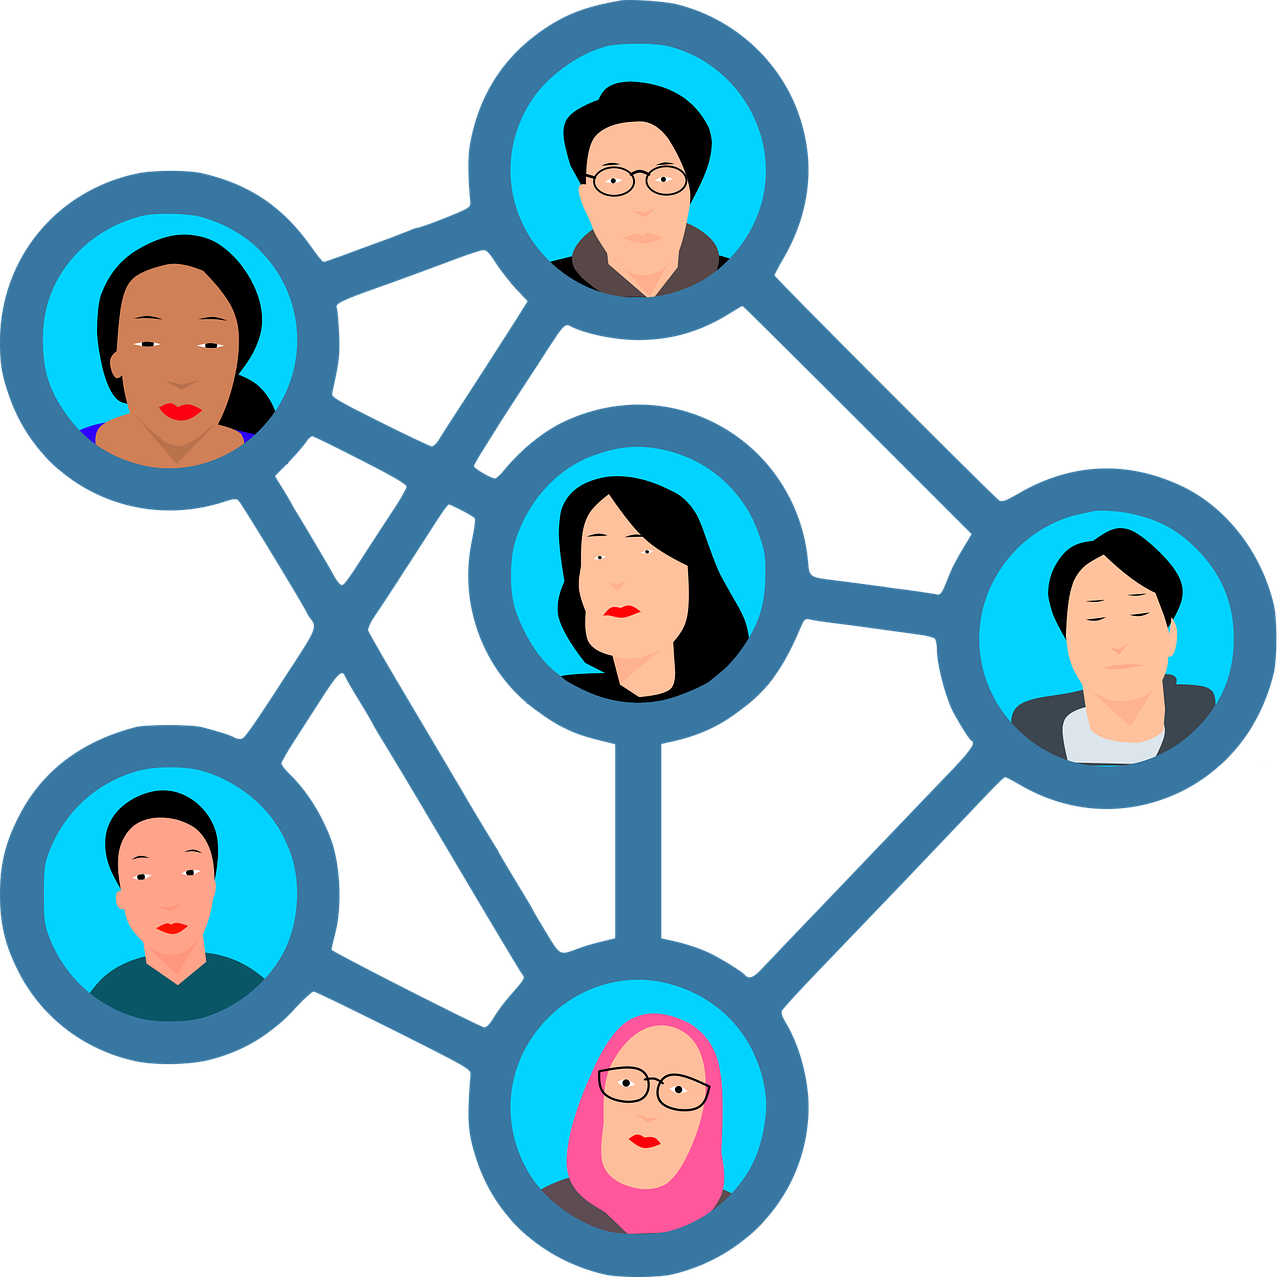 Social Media Network People - Free vector graphic on Pixabay